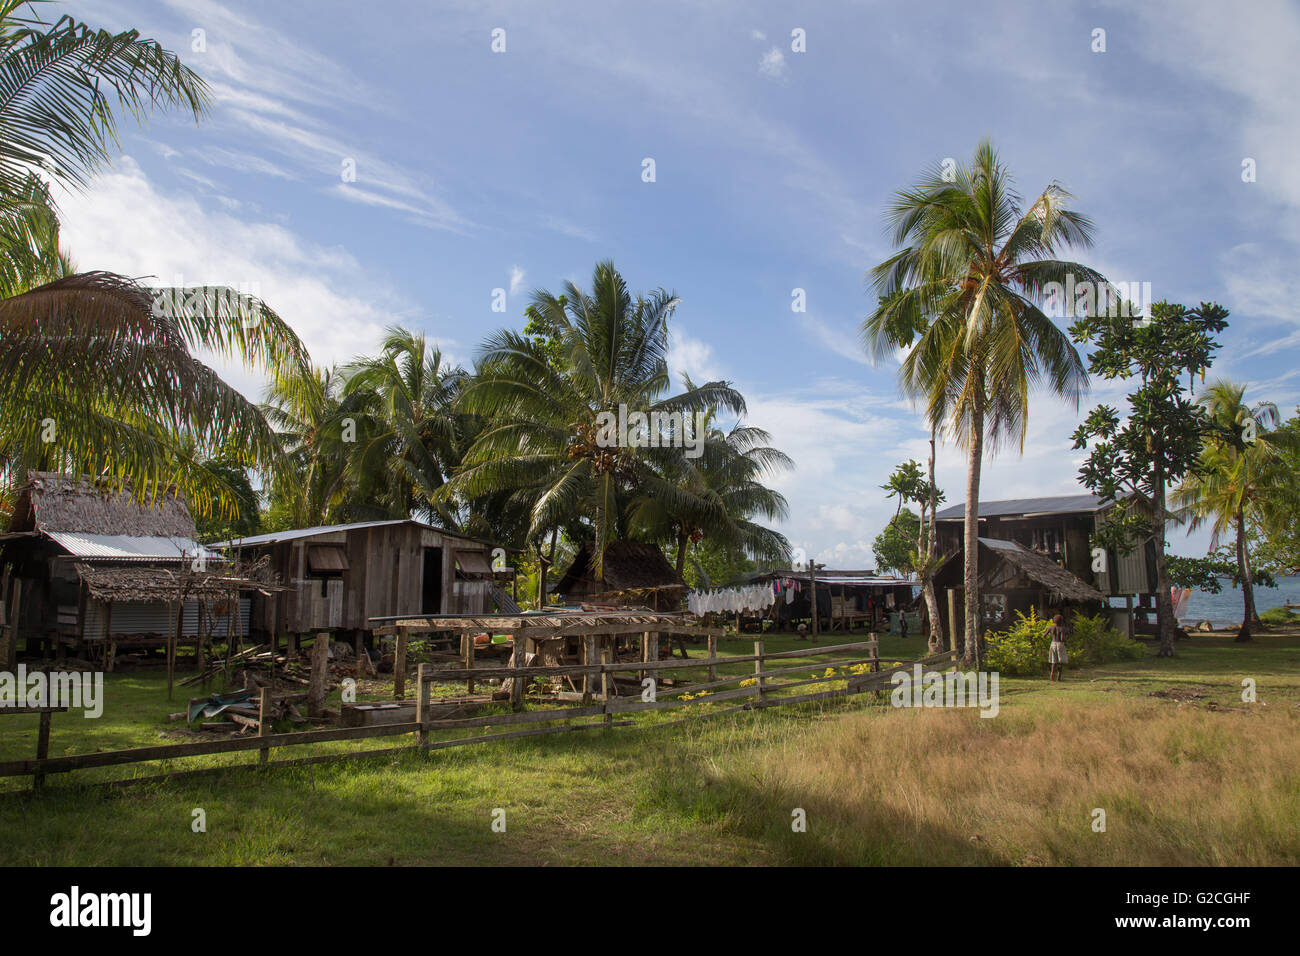 Chea Village, Solomon Islands - June 15, 2015: Local village on the Solomon Islands. - Stock Image